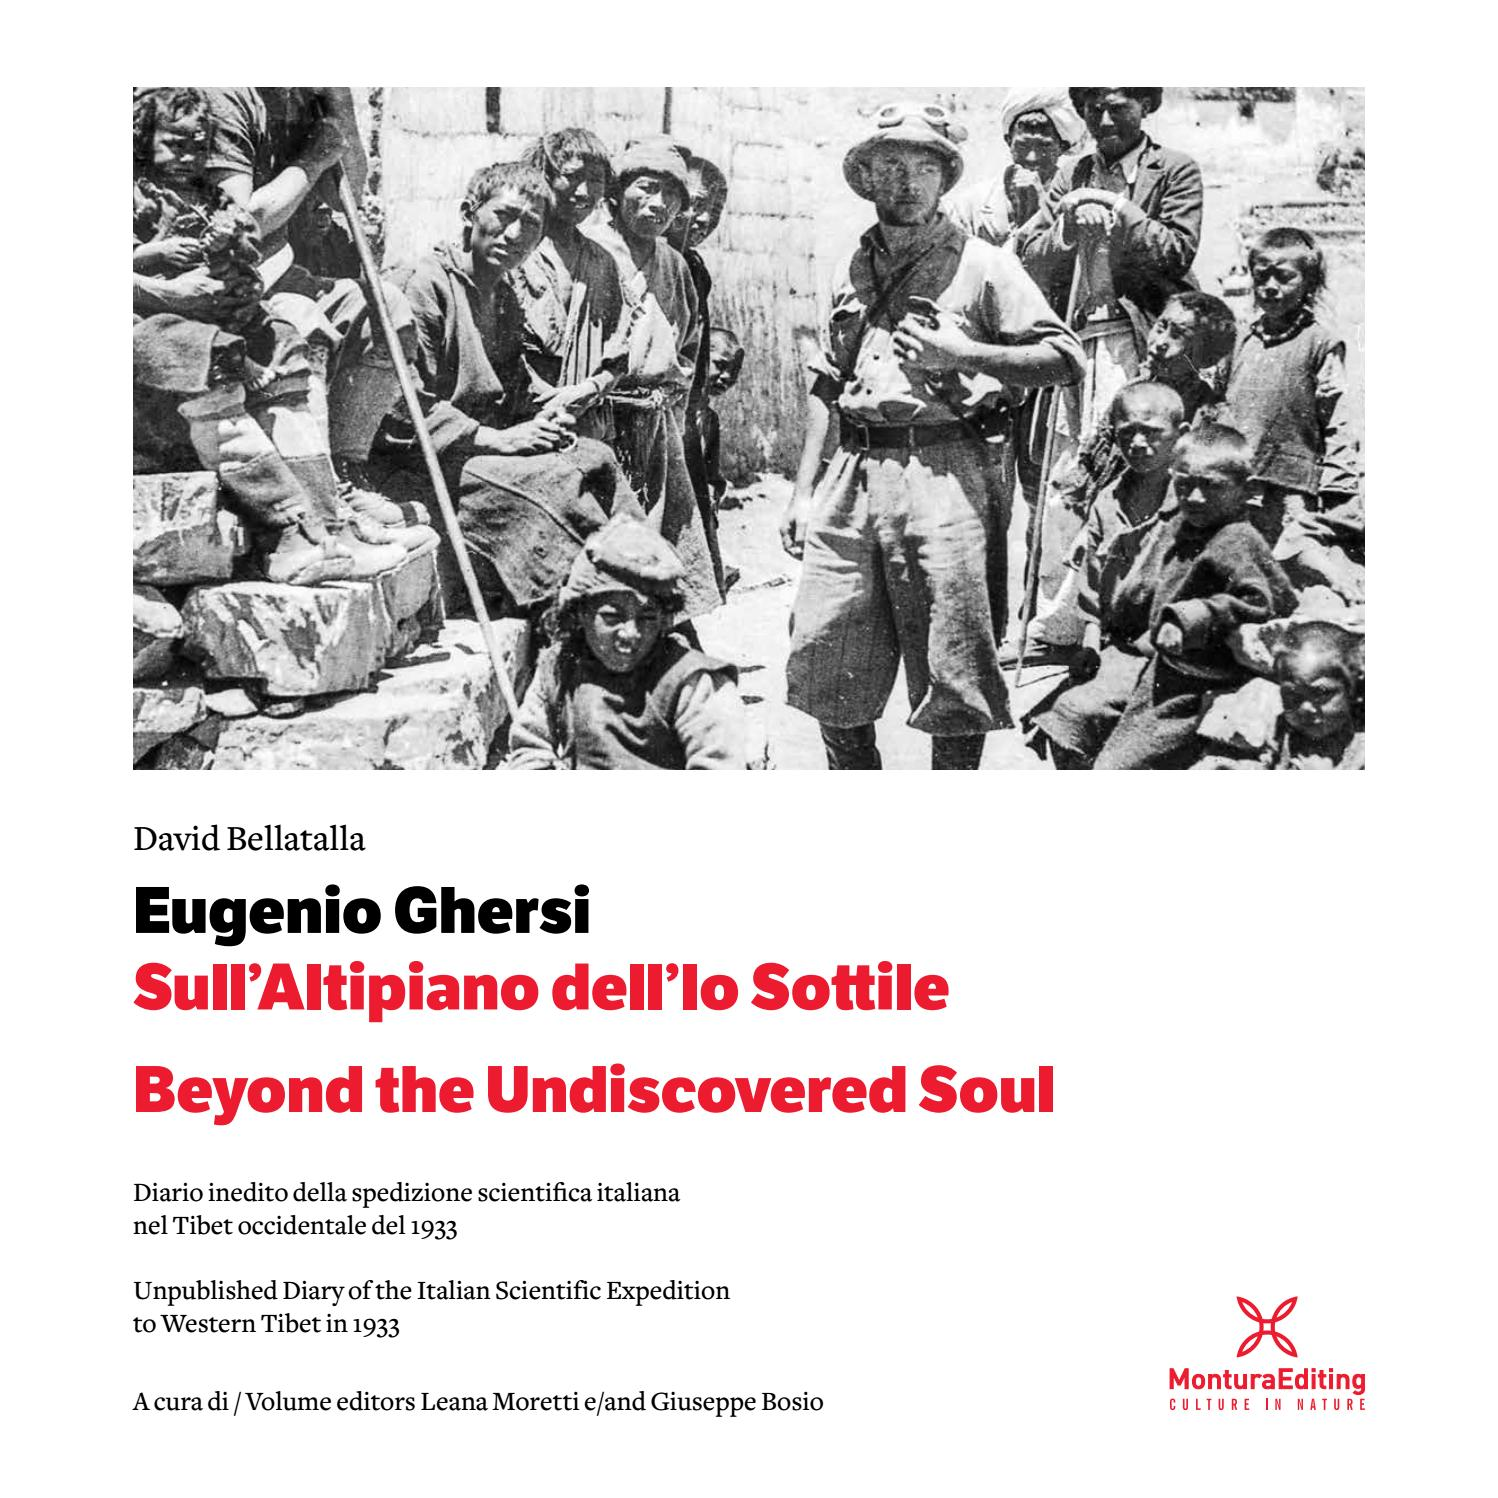 The Ghersi Soul Undiscovered Beyond Eugenio QxhtsCrd